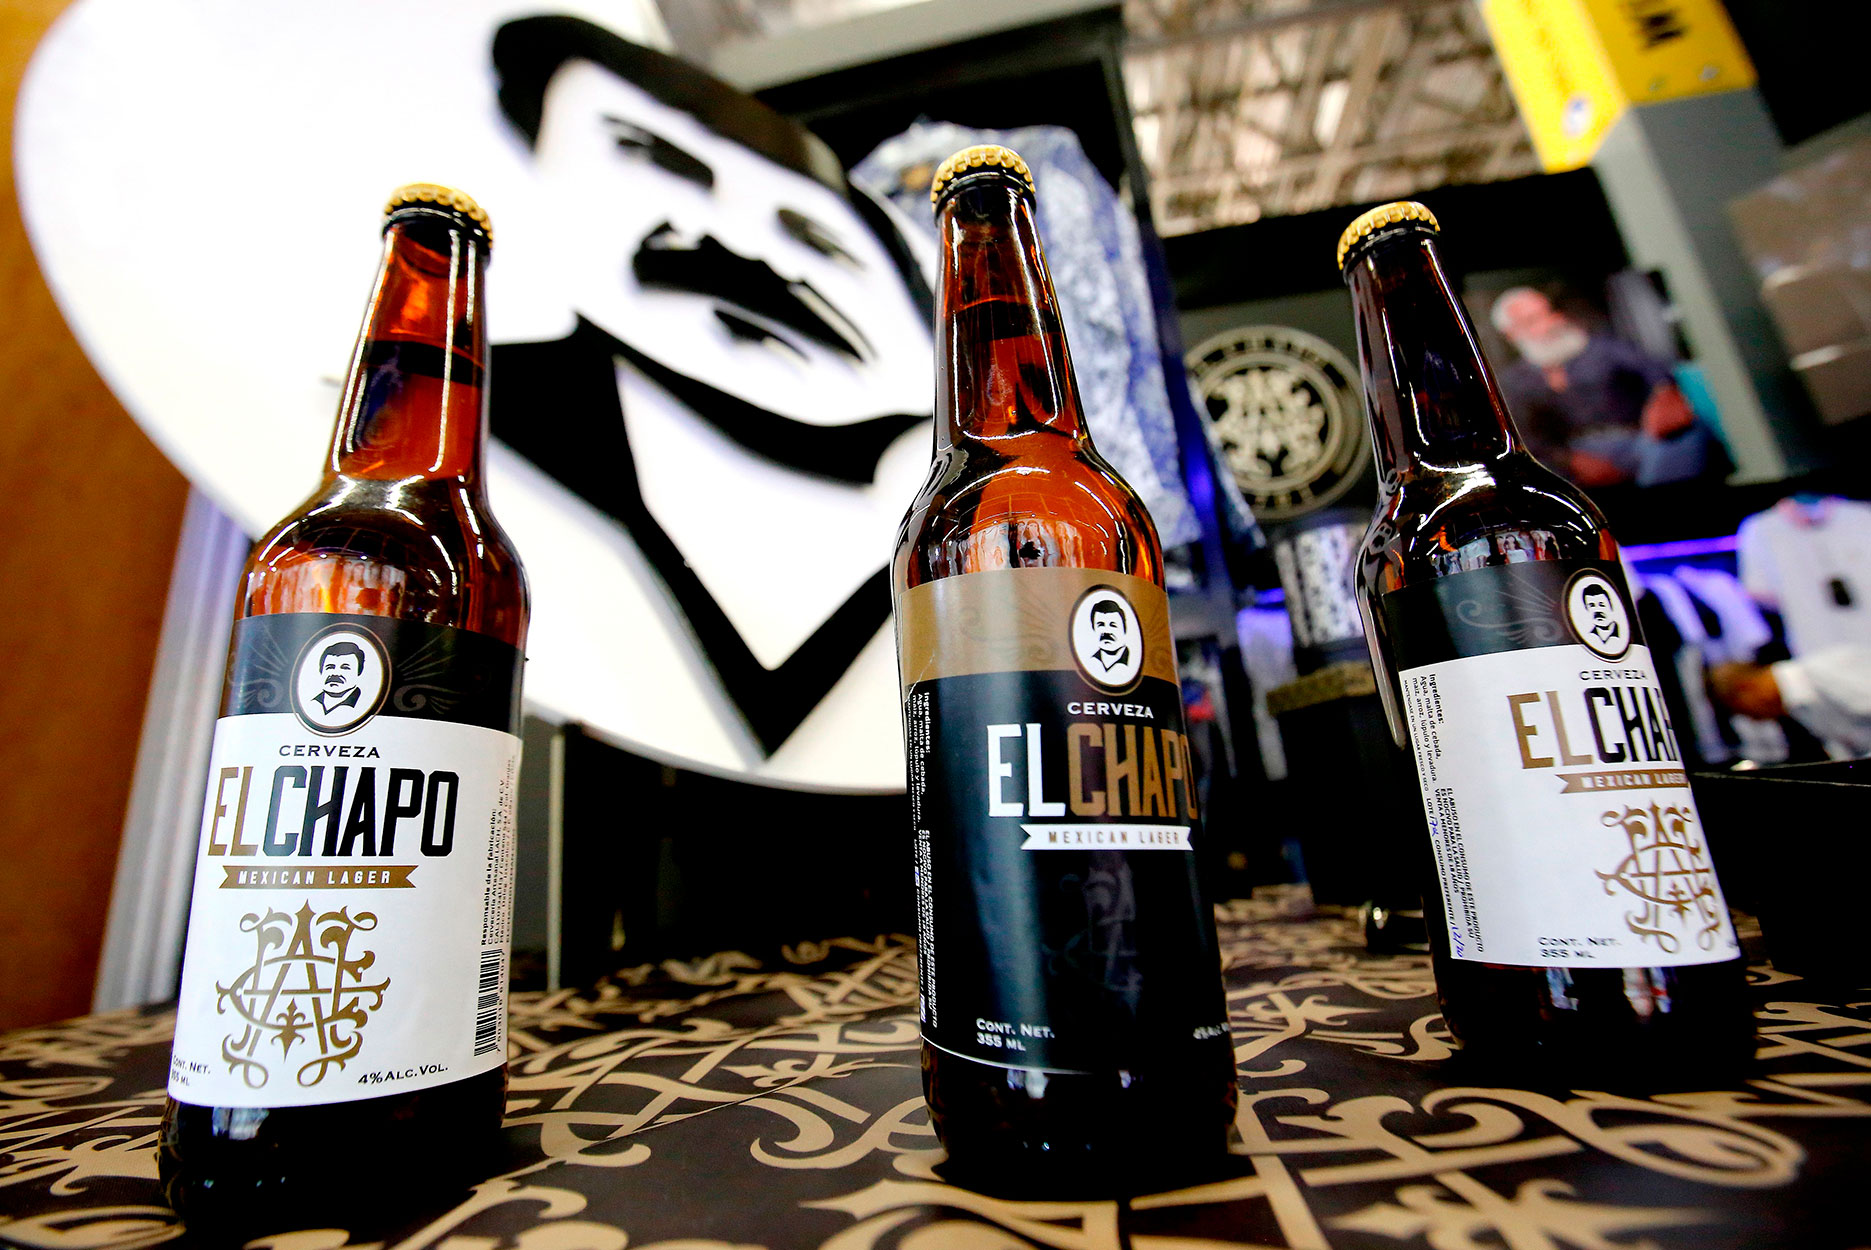 Three bottles of El Chapo beer